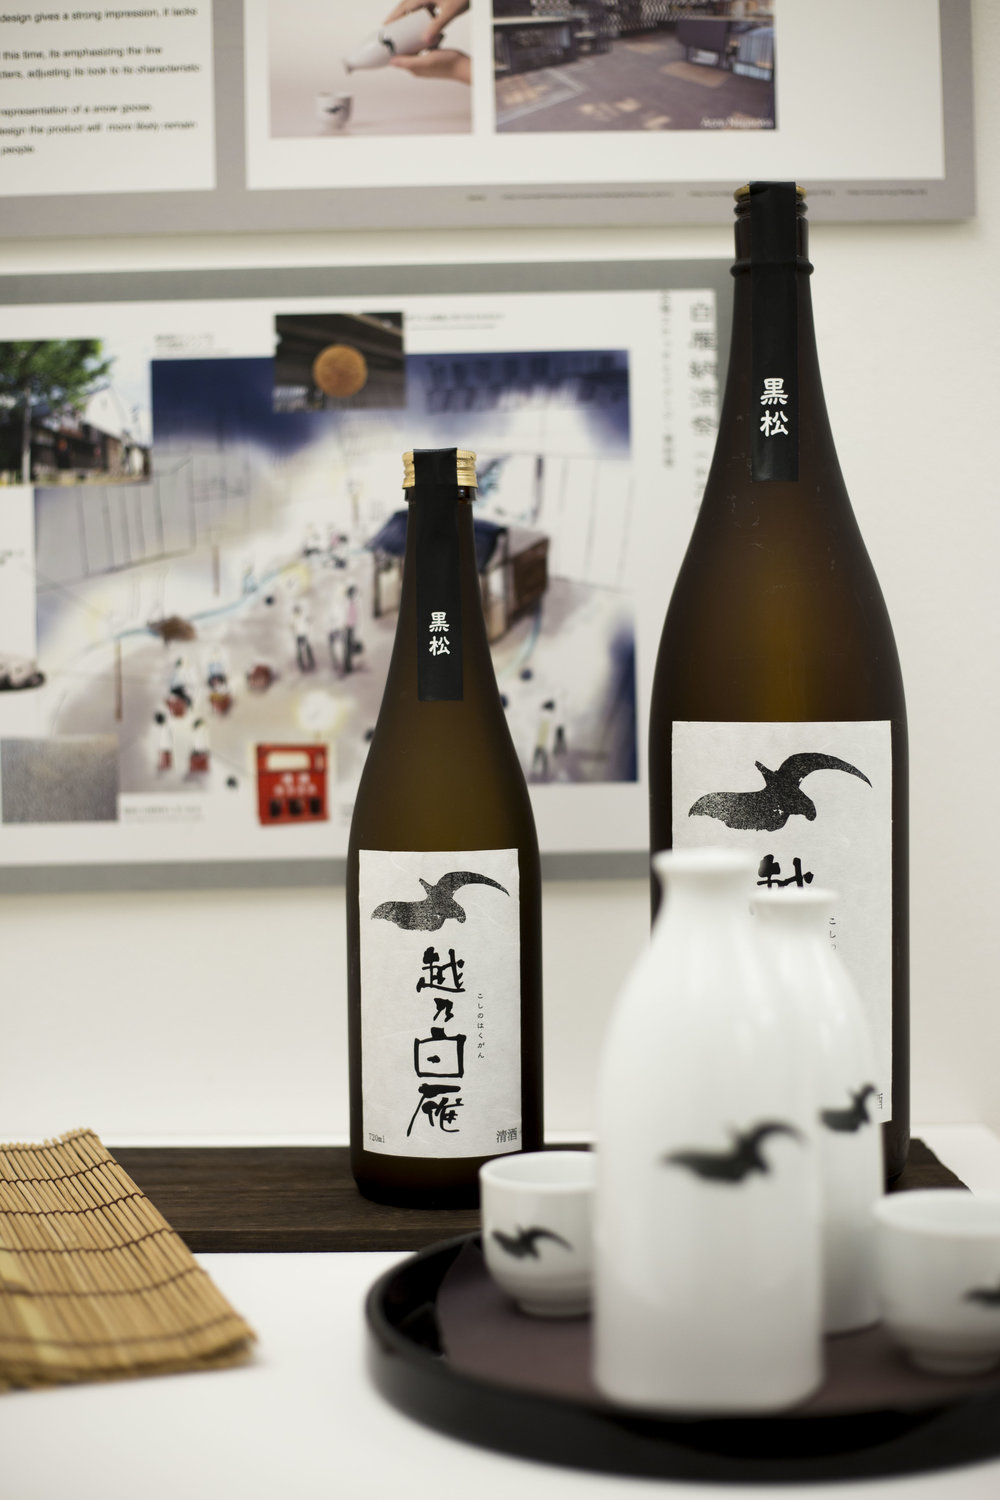 SAKE exhibition in the Crypt_HH039.JPG